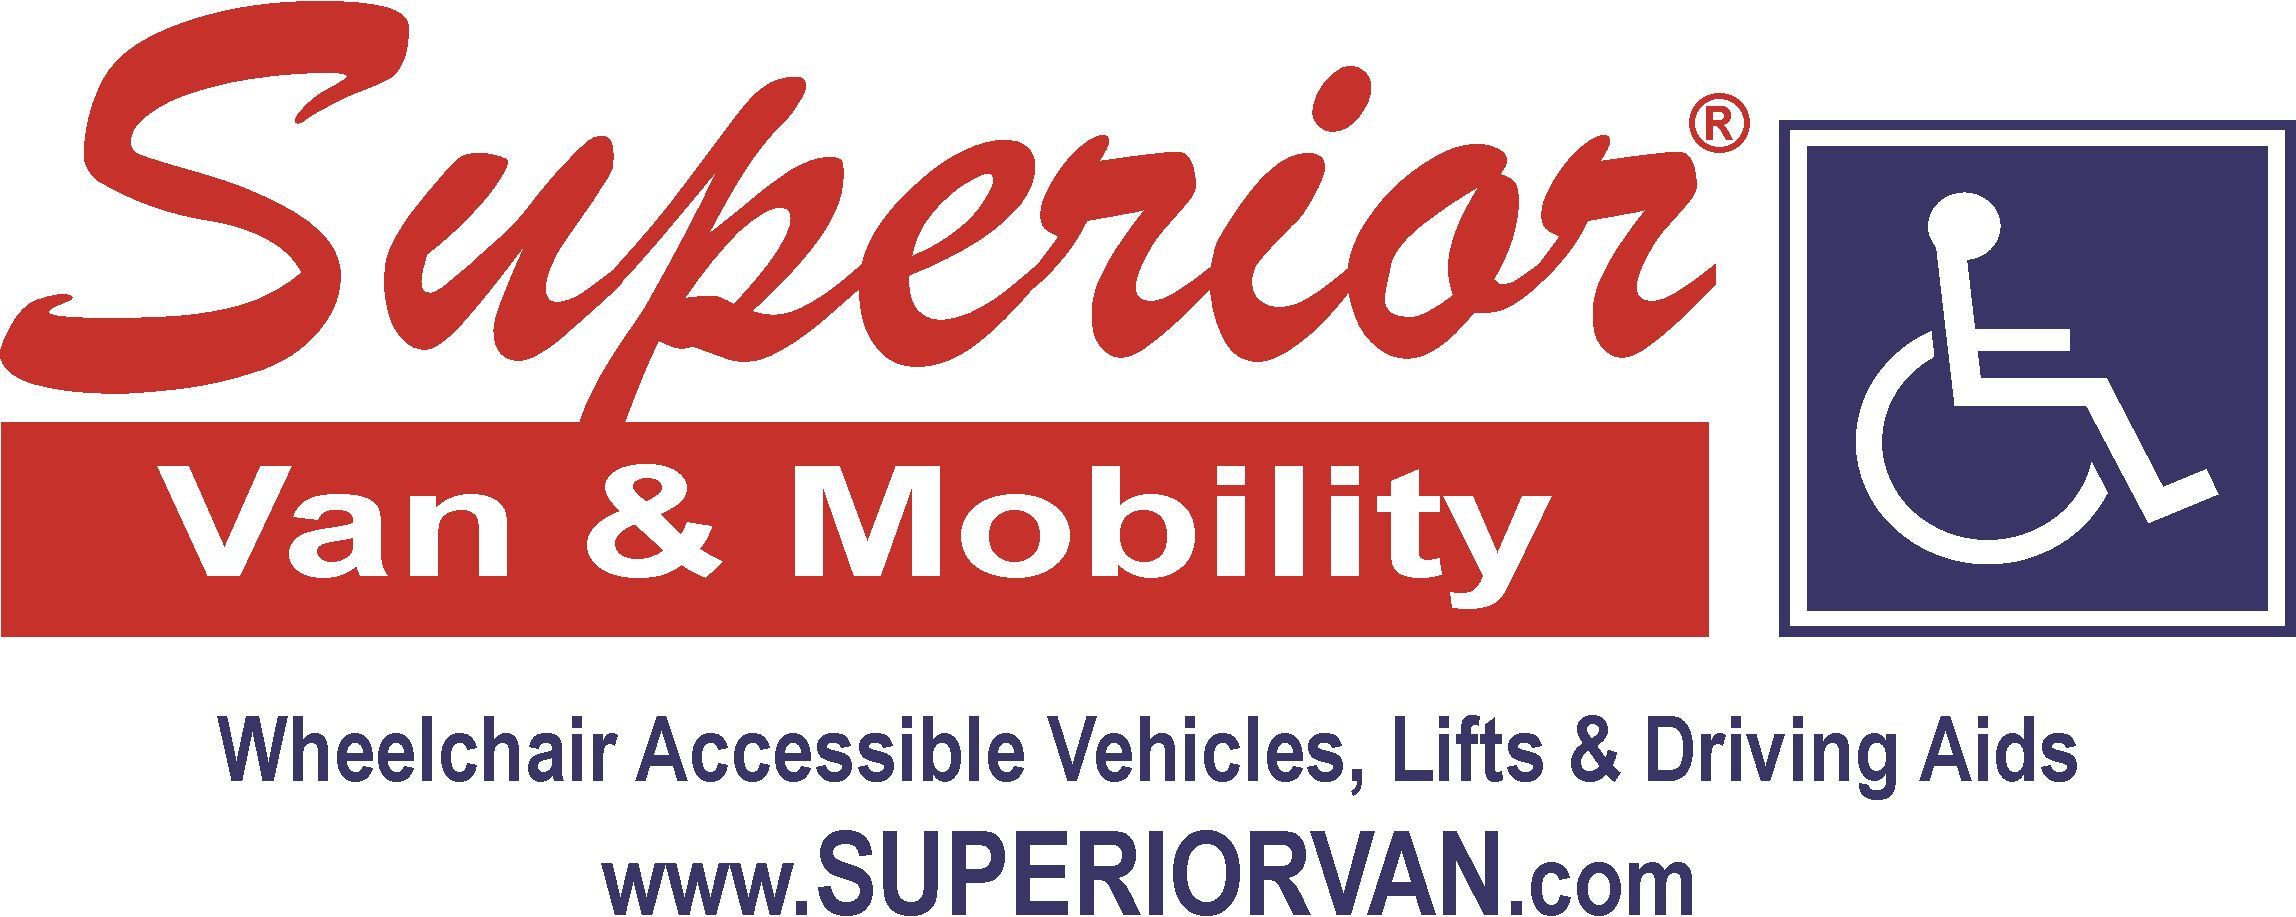 Superior Logo - Sales Rental Service Opens in new window